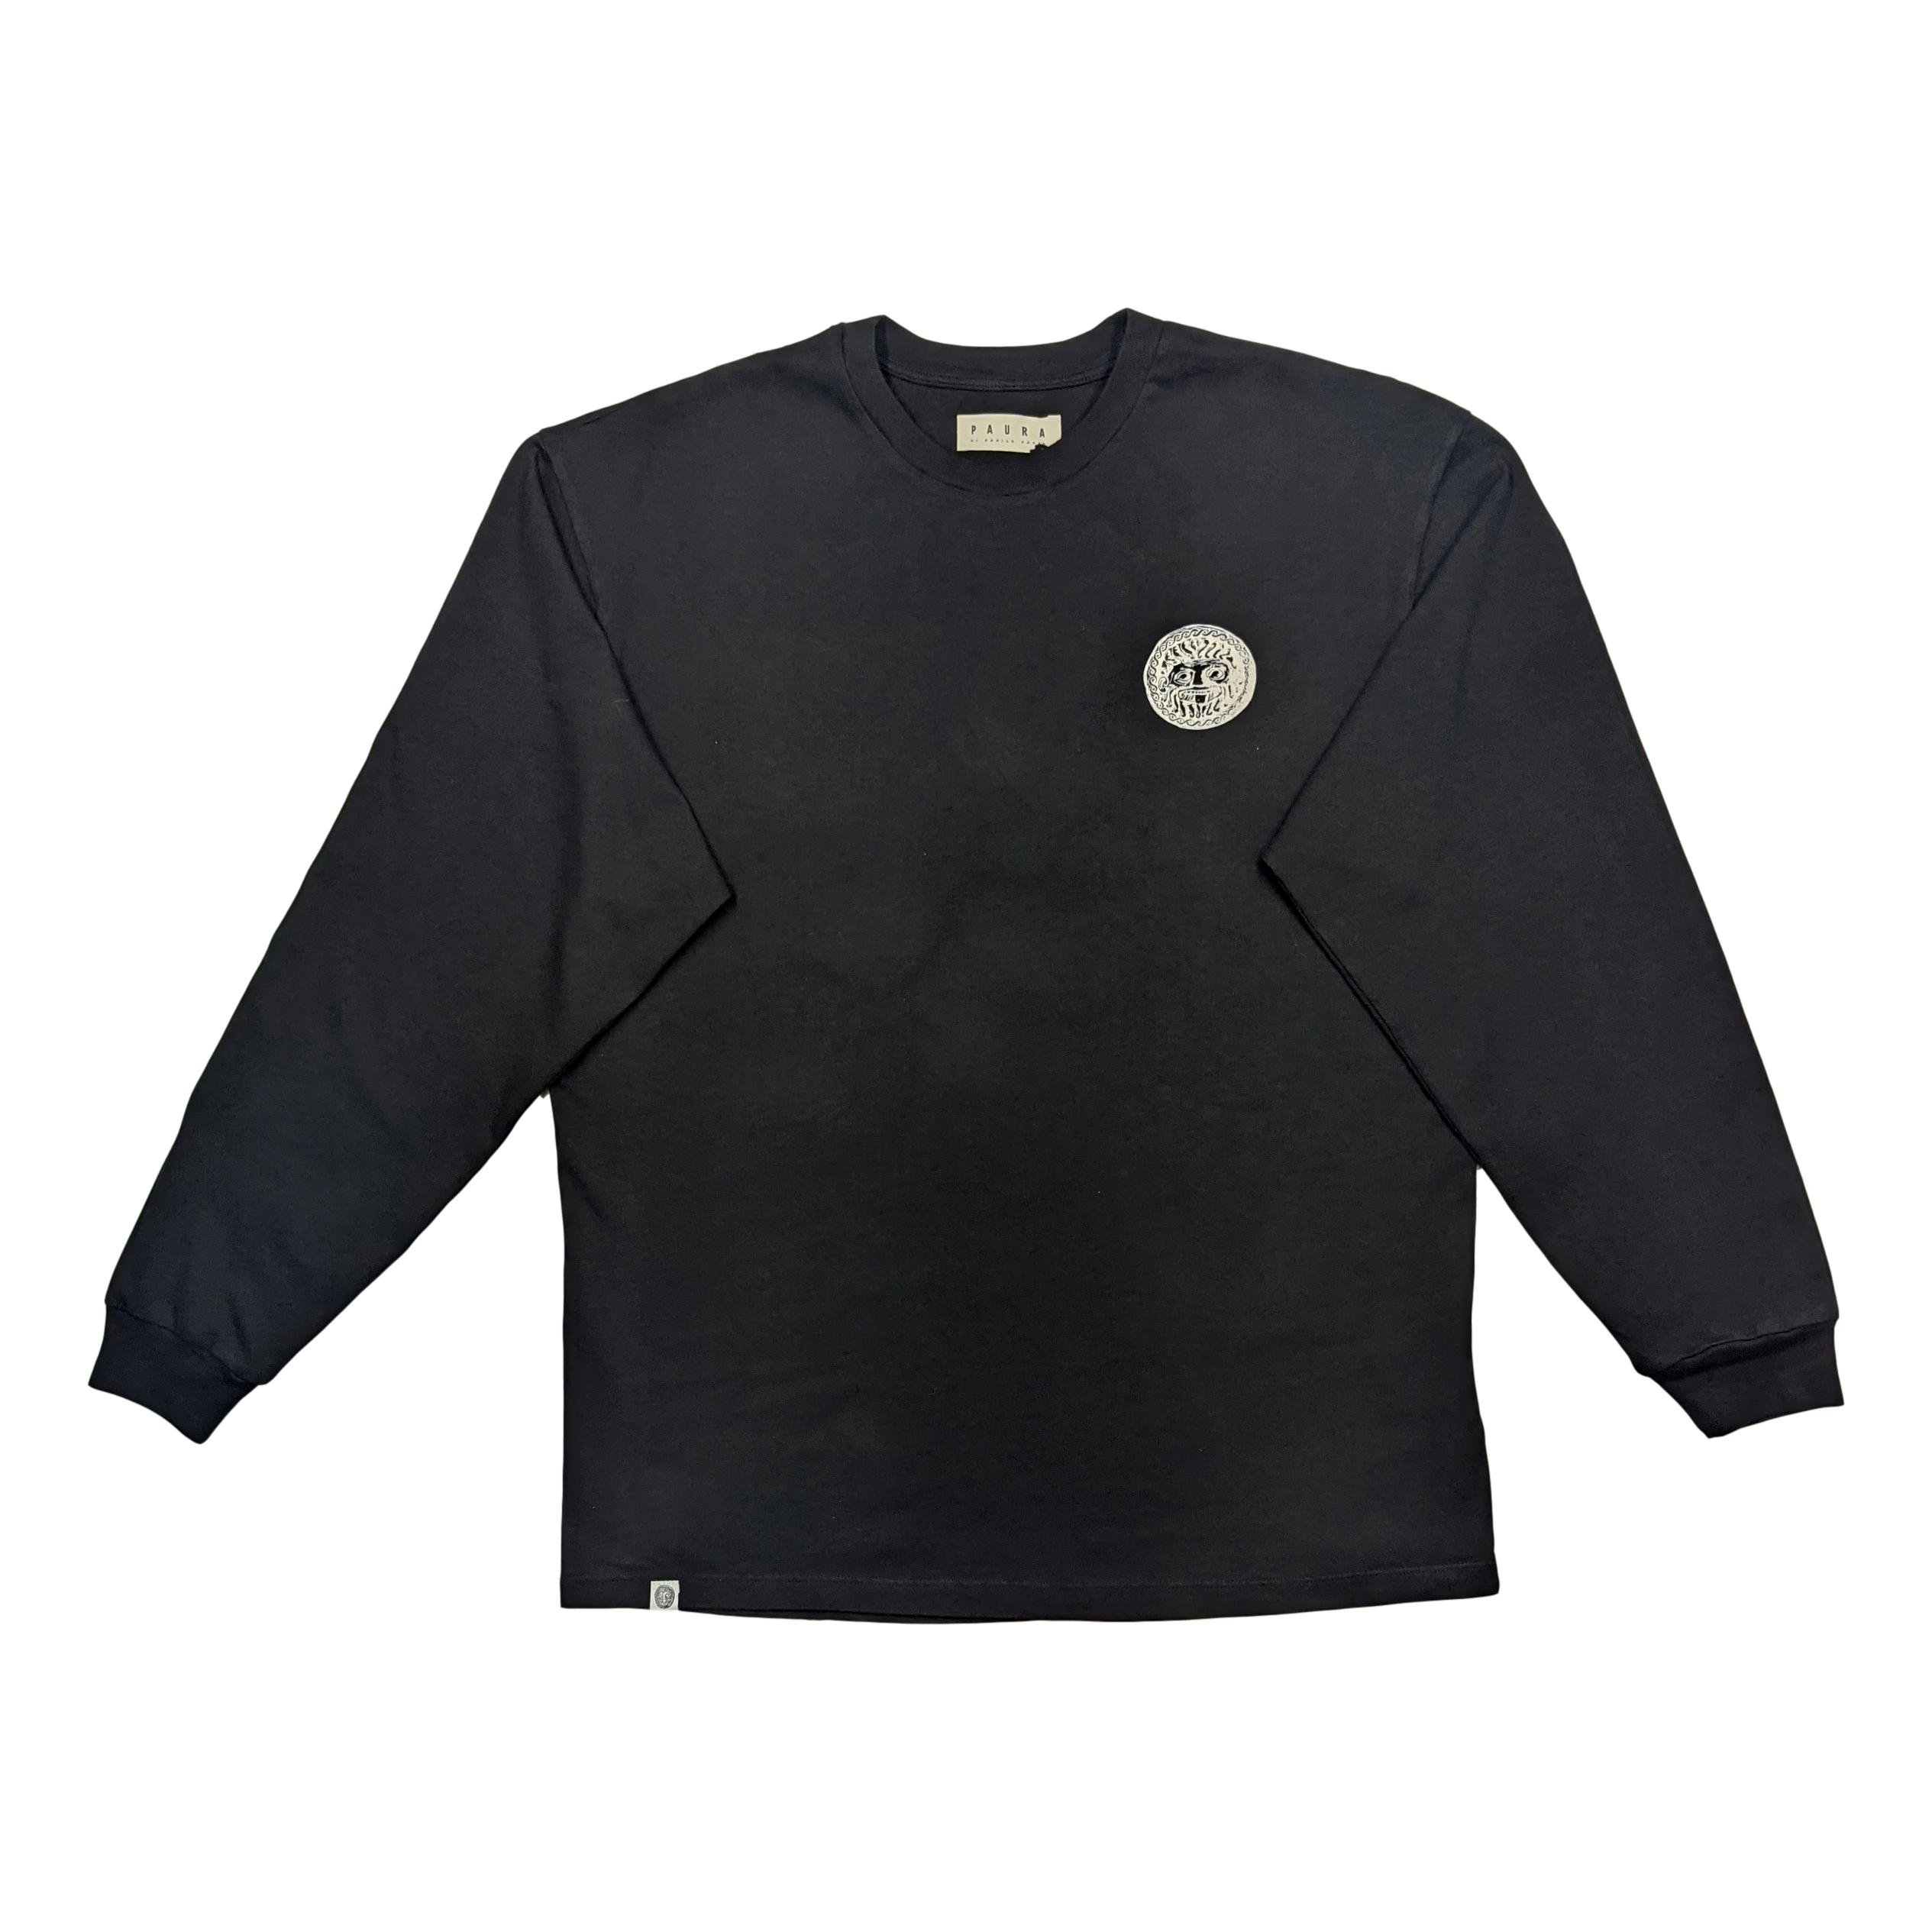 Long sleeve t-shirt with logo on the chest DANILO PAURA |  | 05DP1002M01090ST